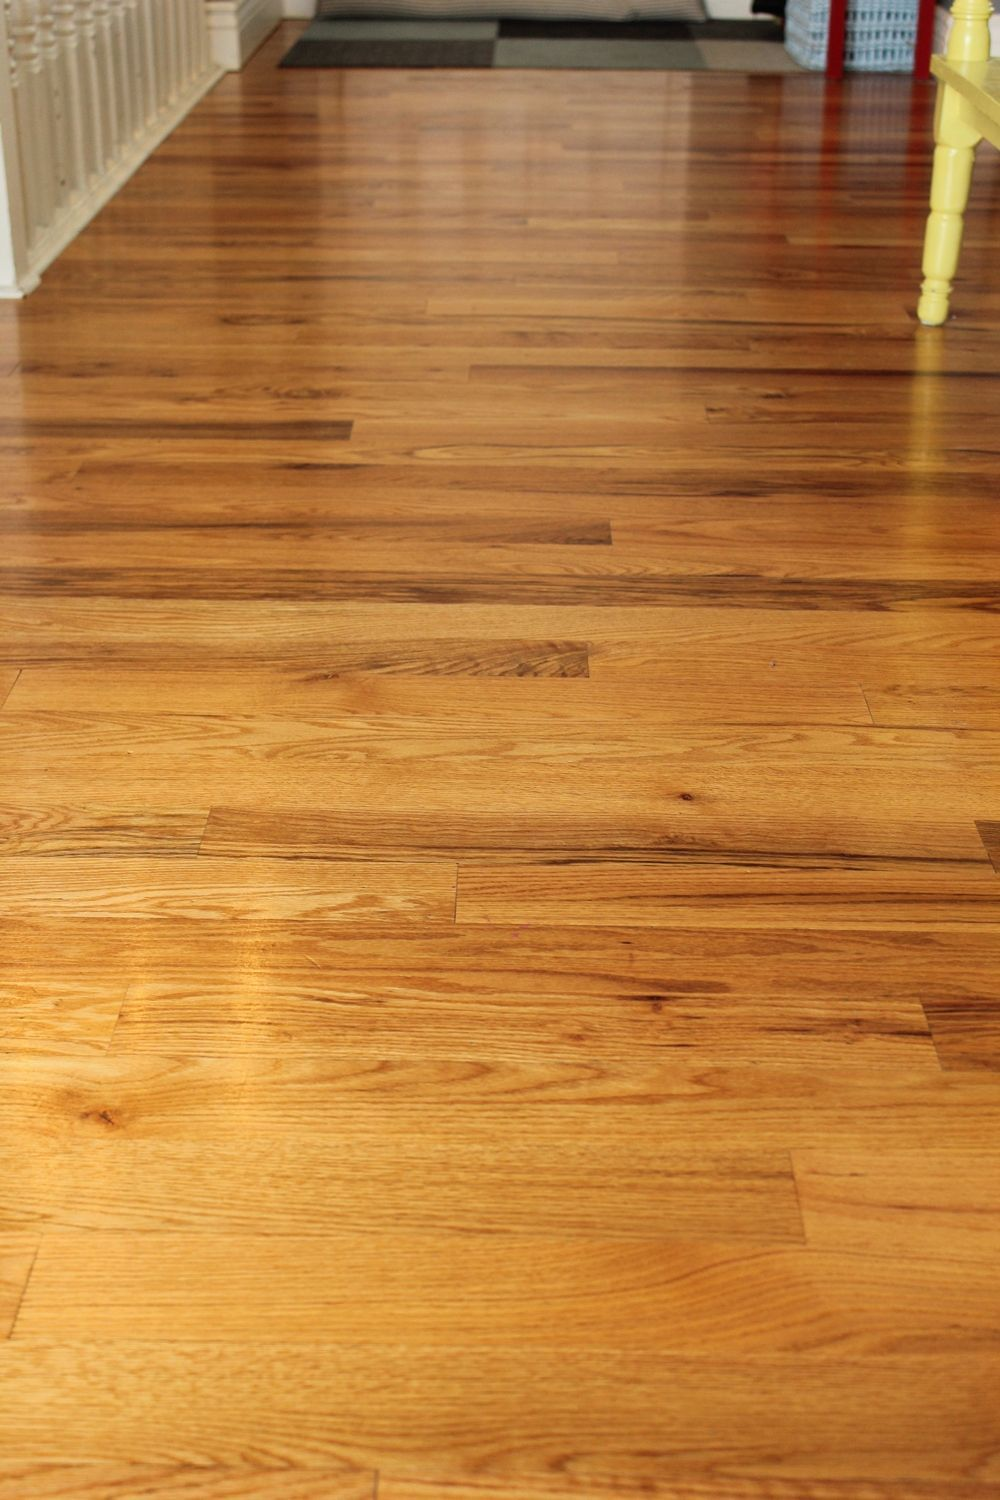 DIY Wood Floor Cleaner - Beware possible slipperiness